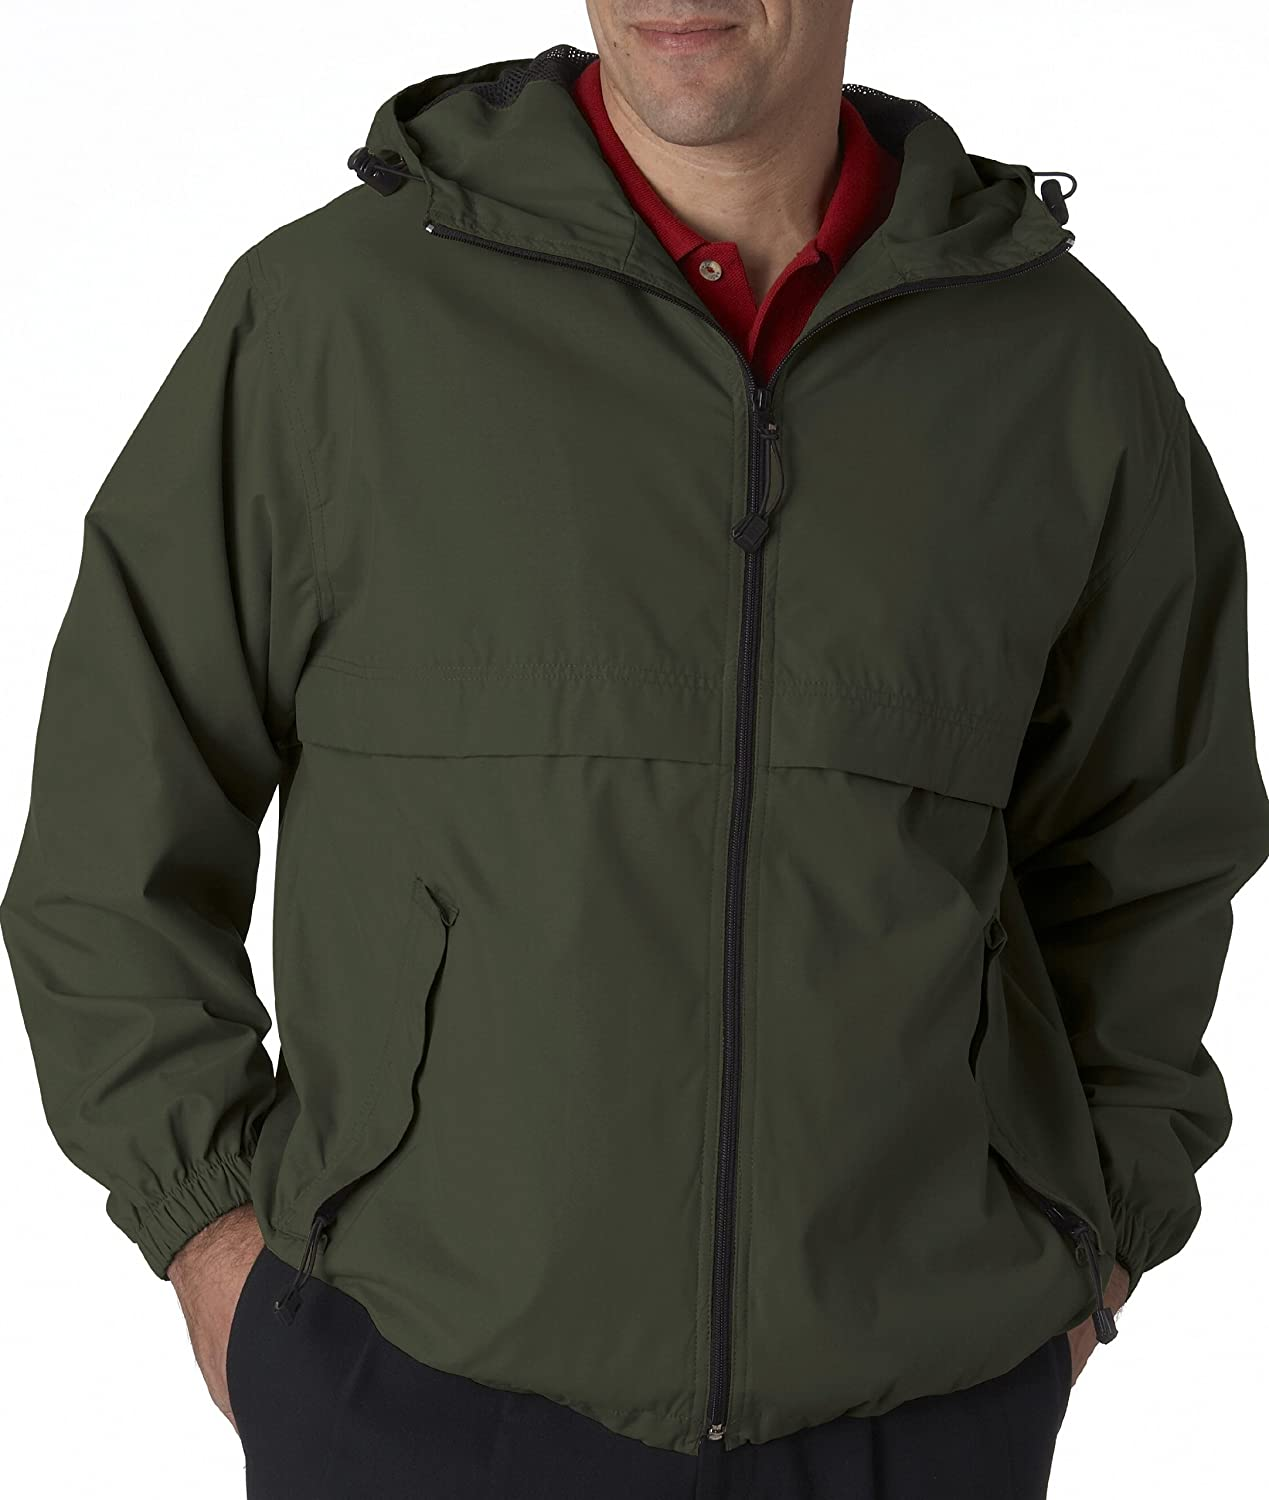 Ultraclub 8908 UC Hooded Zip Jacket 8915